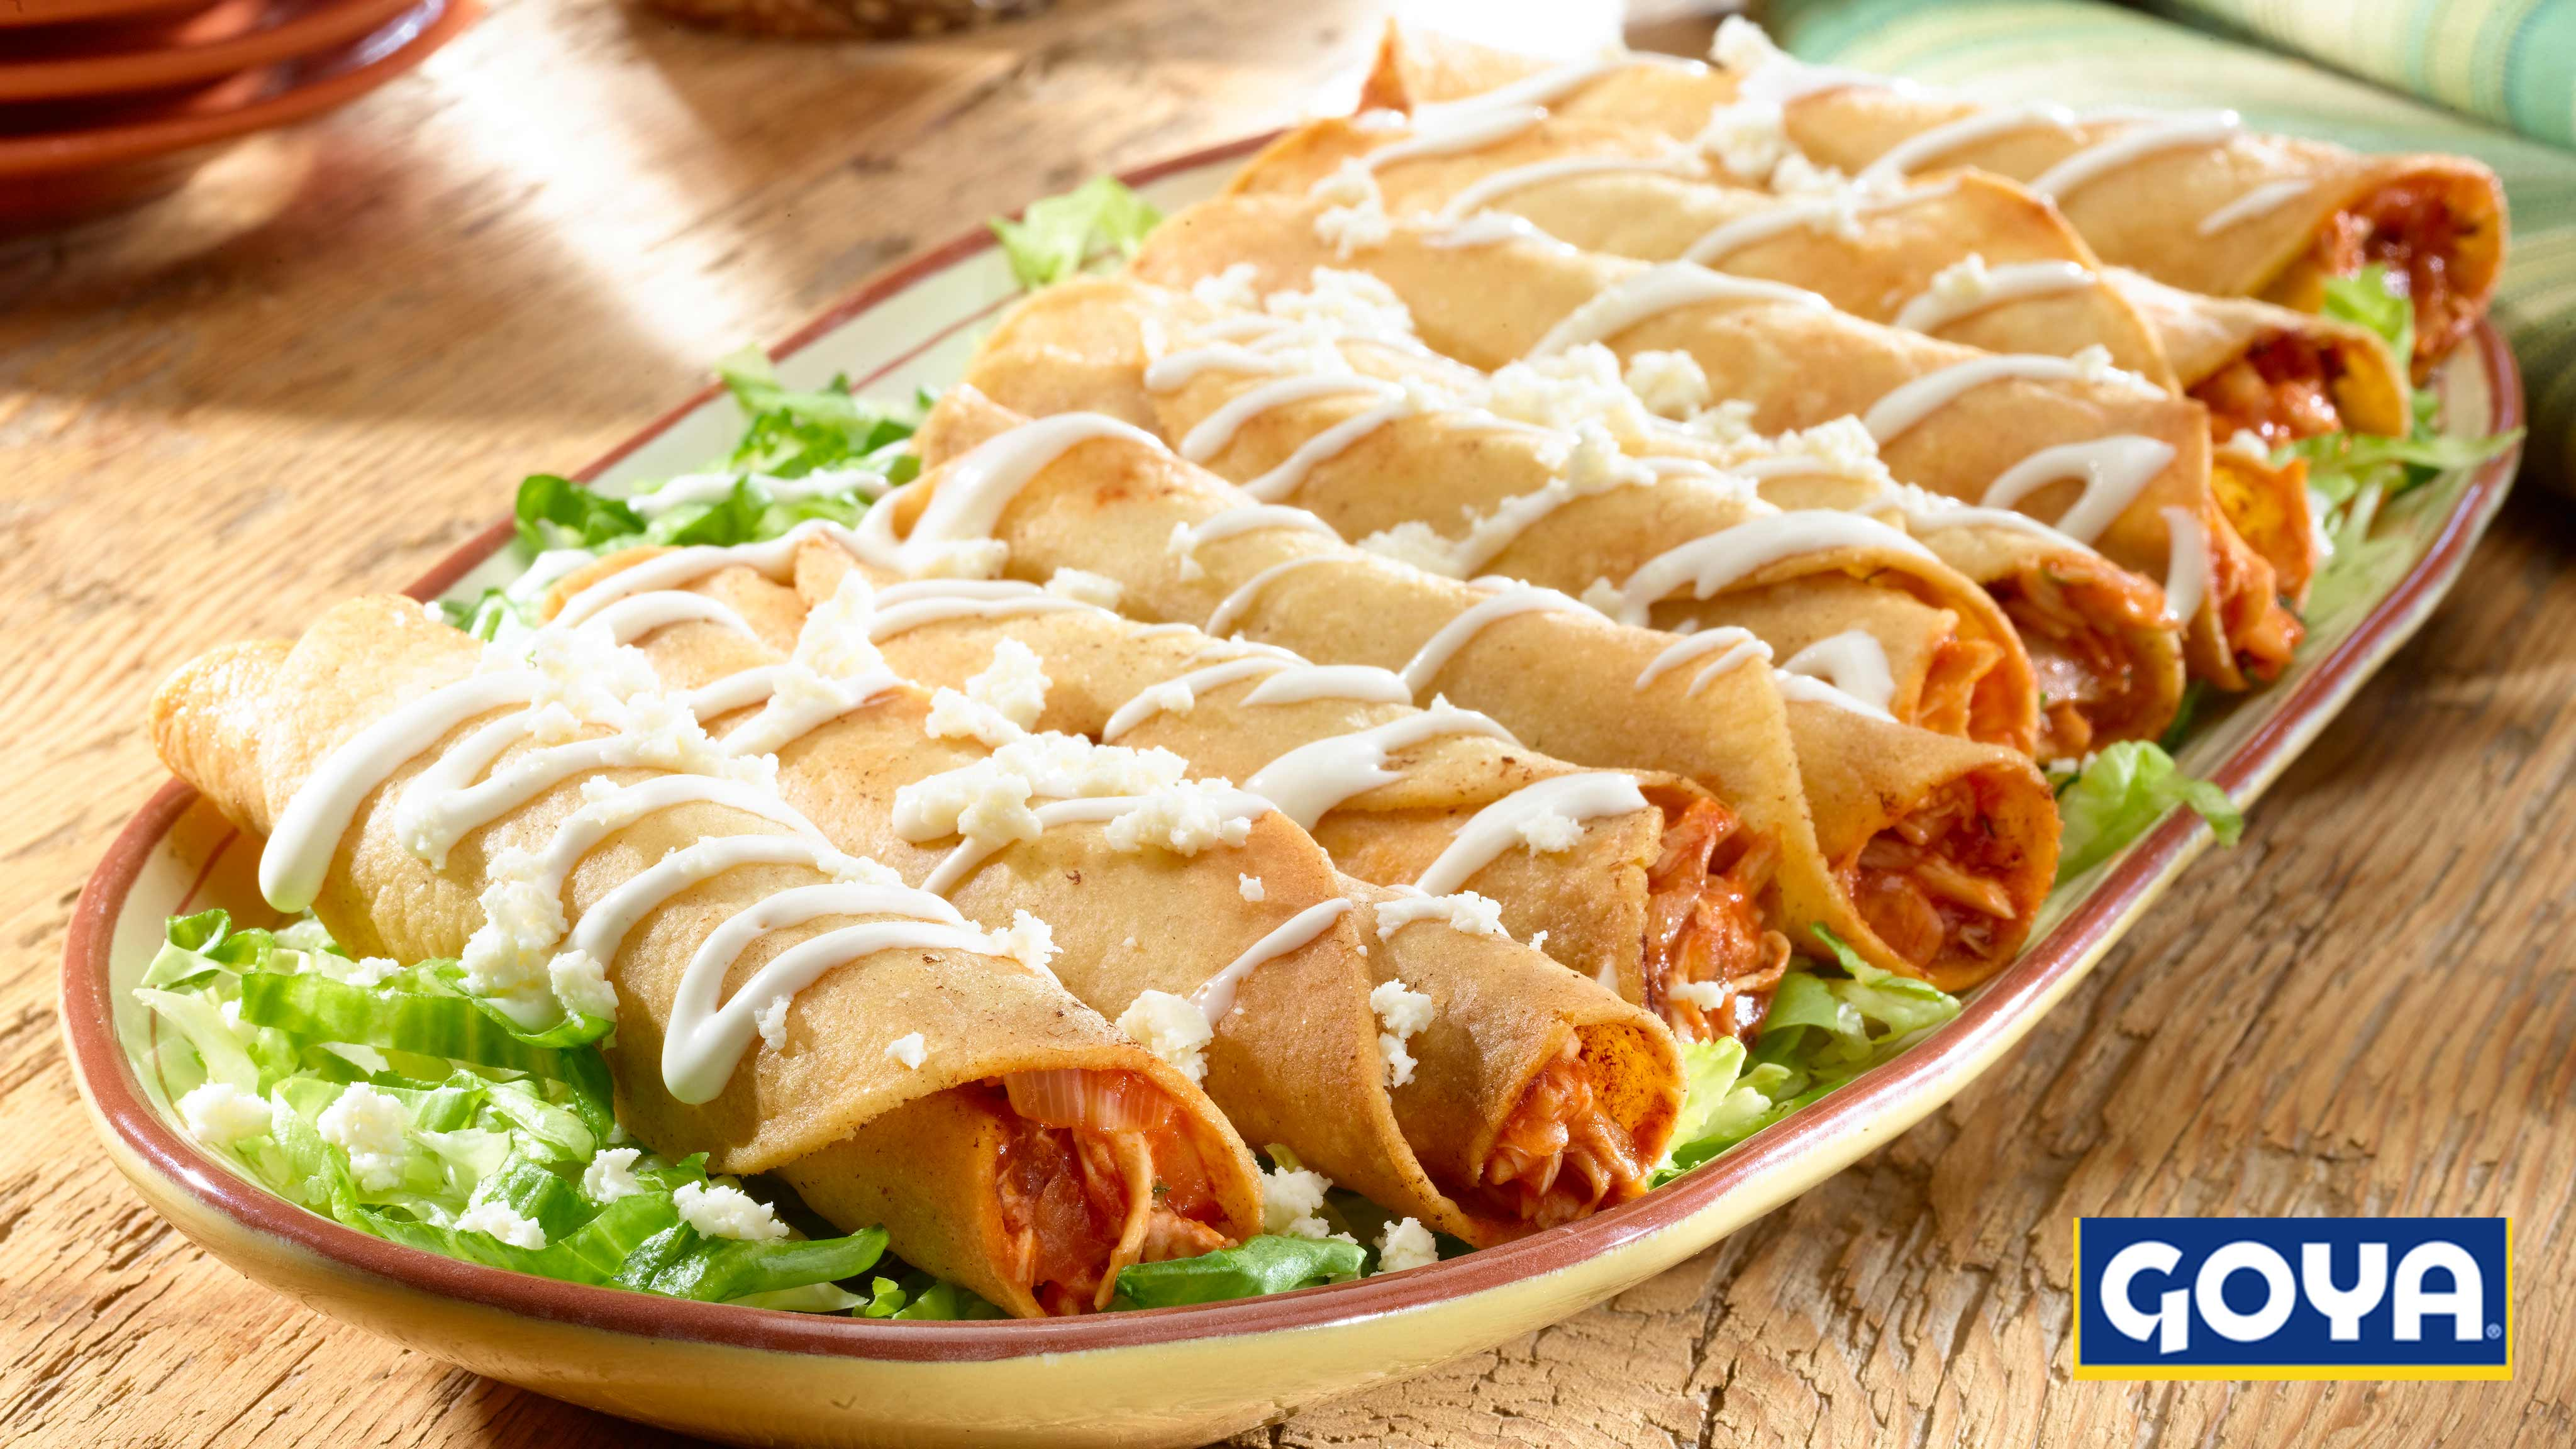 Image for Recipe Chicken Flautas (Flautas de Pollo)